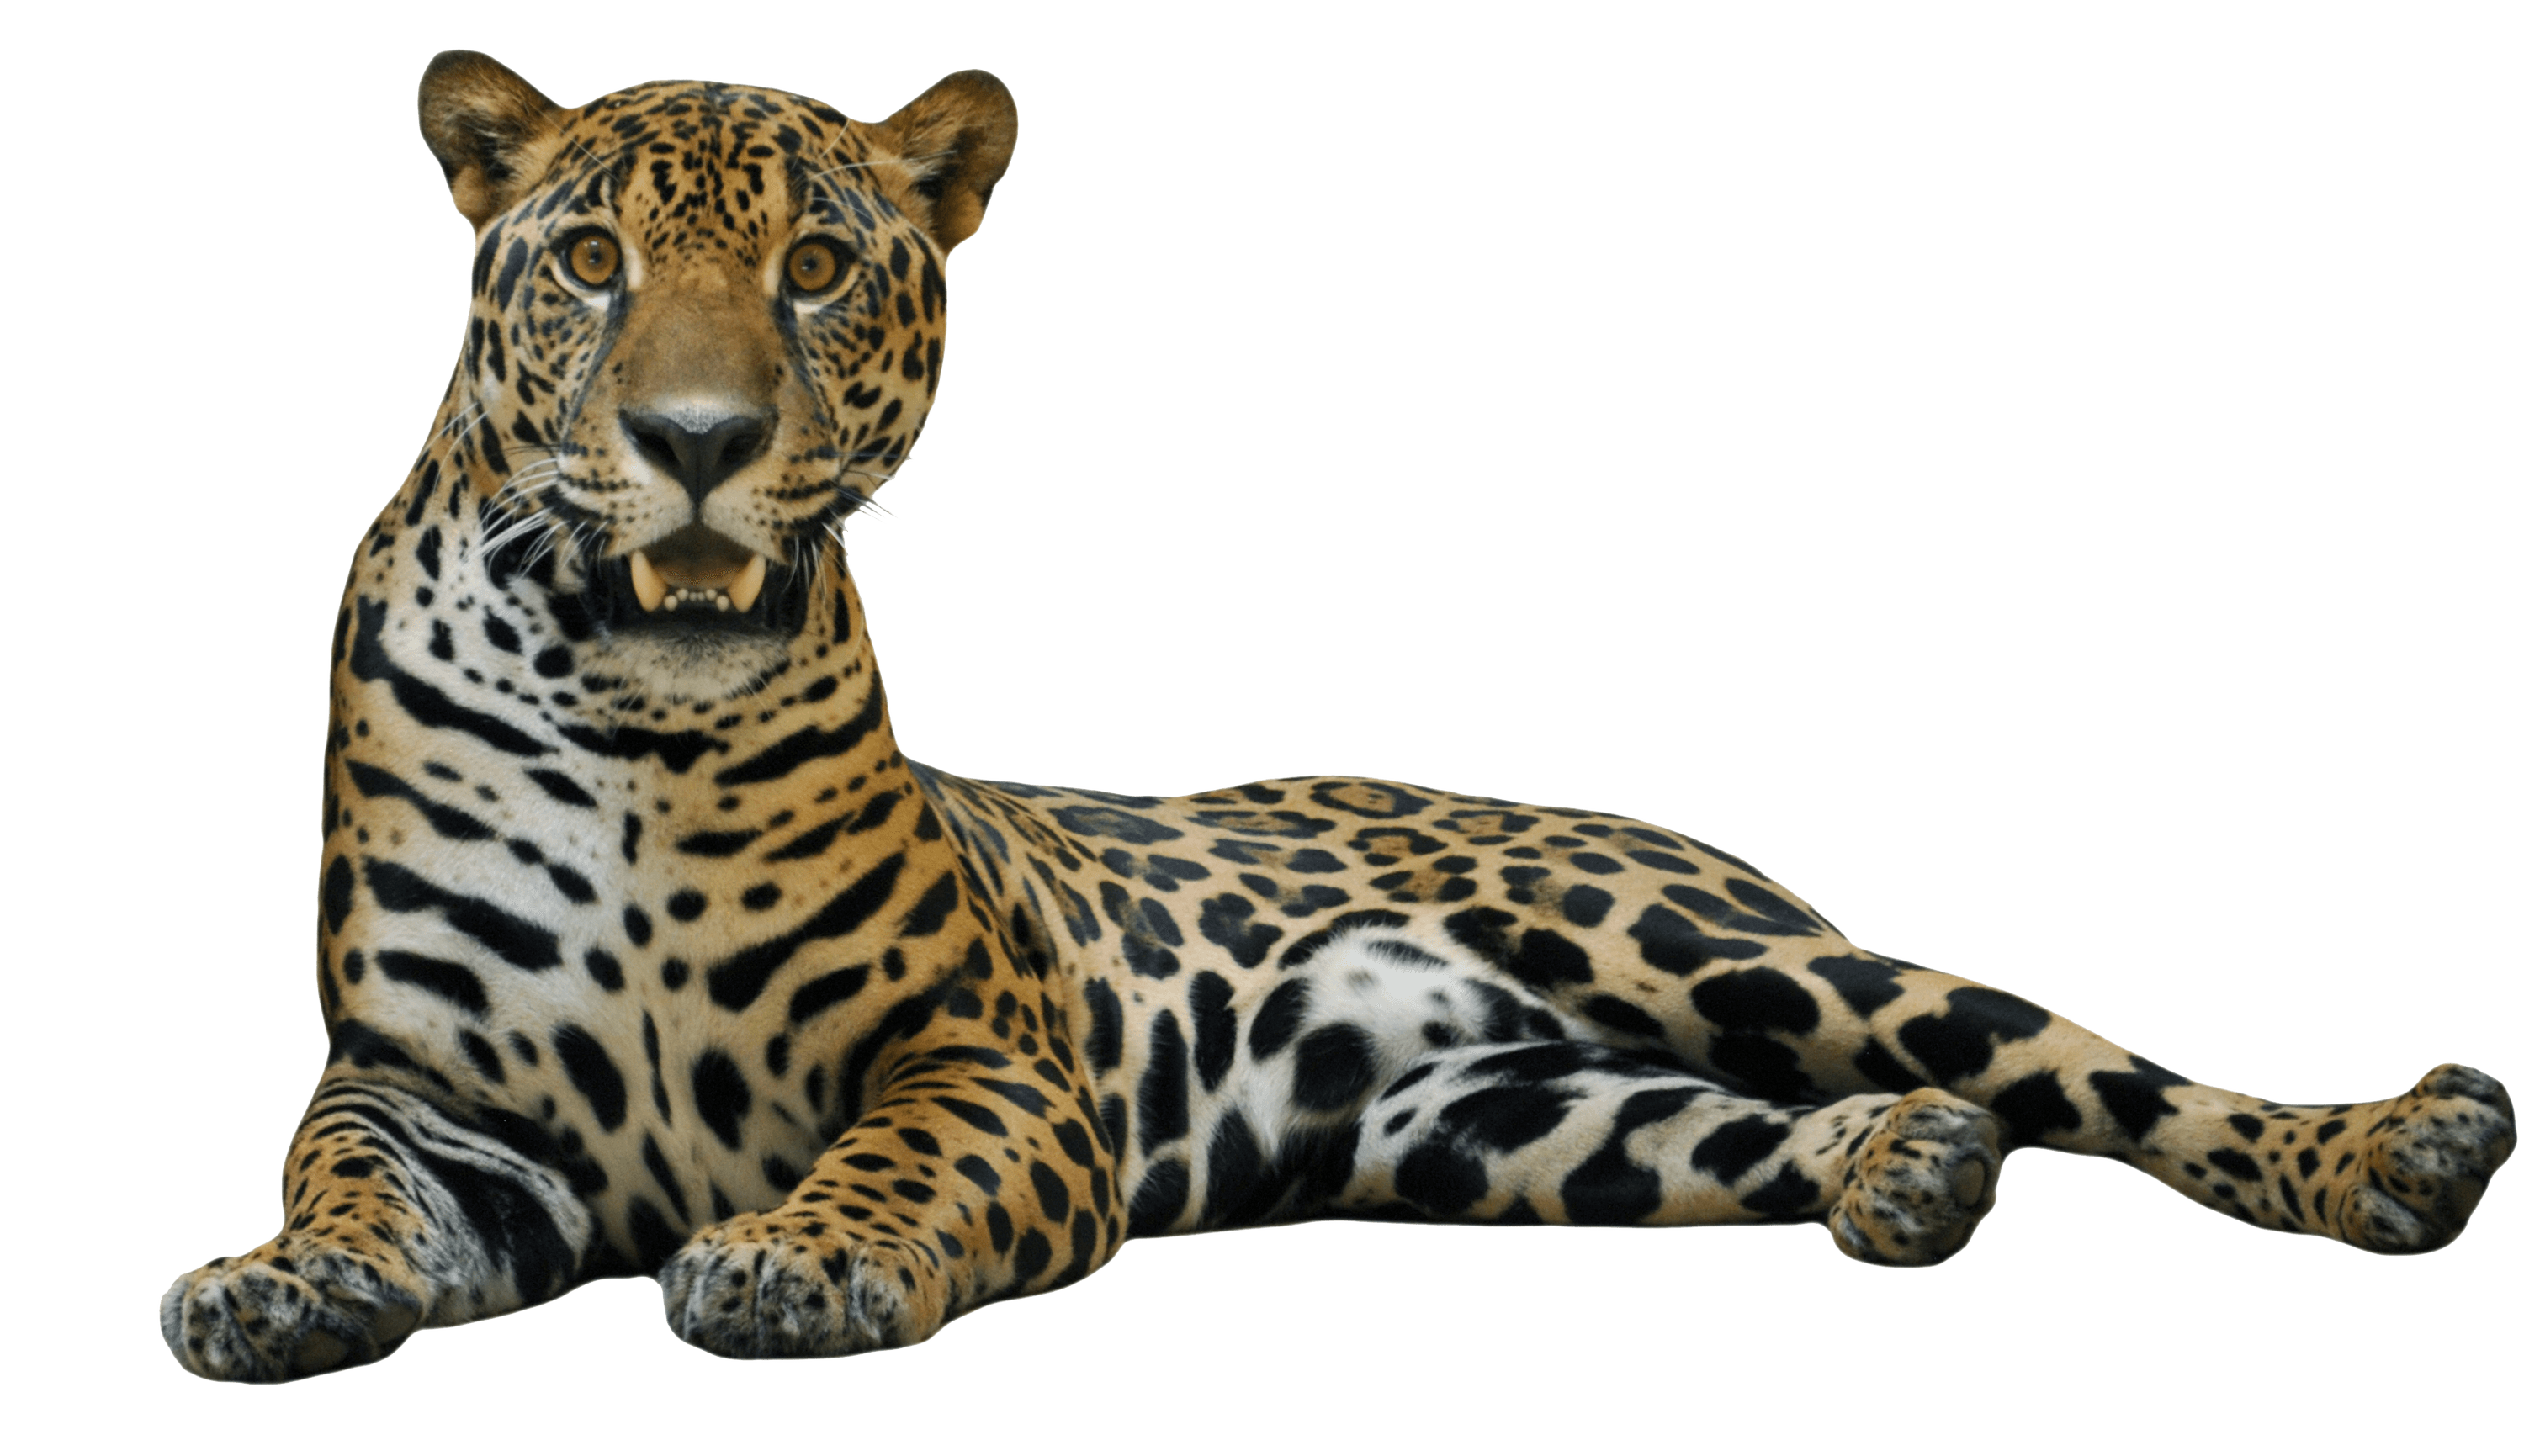 Jaguar Free Download